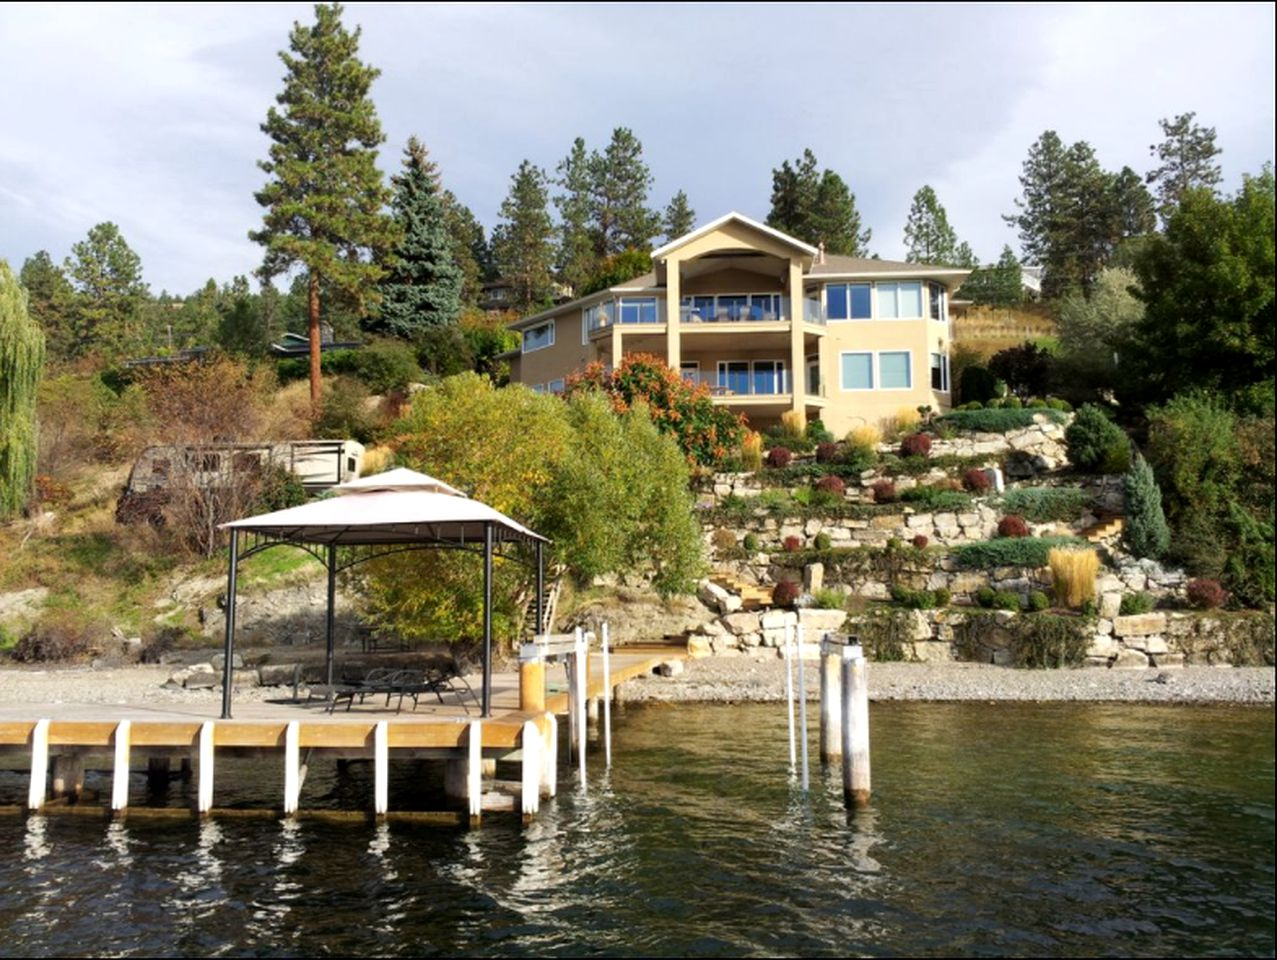 Nature Lodges (Kelowna, British Columbia, Canada)